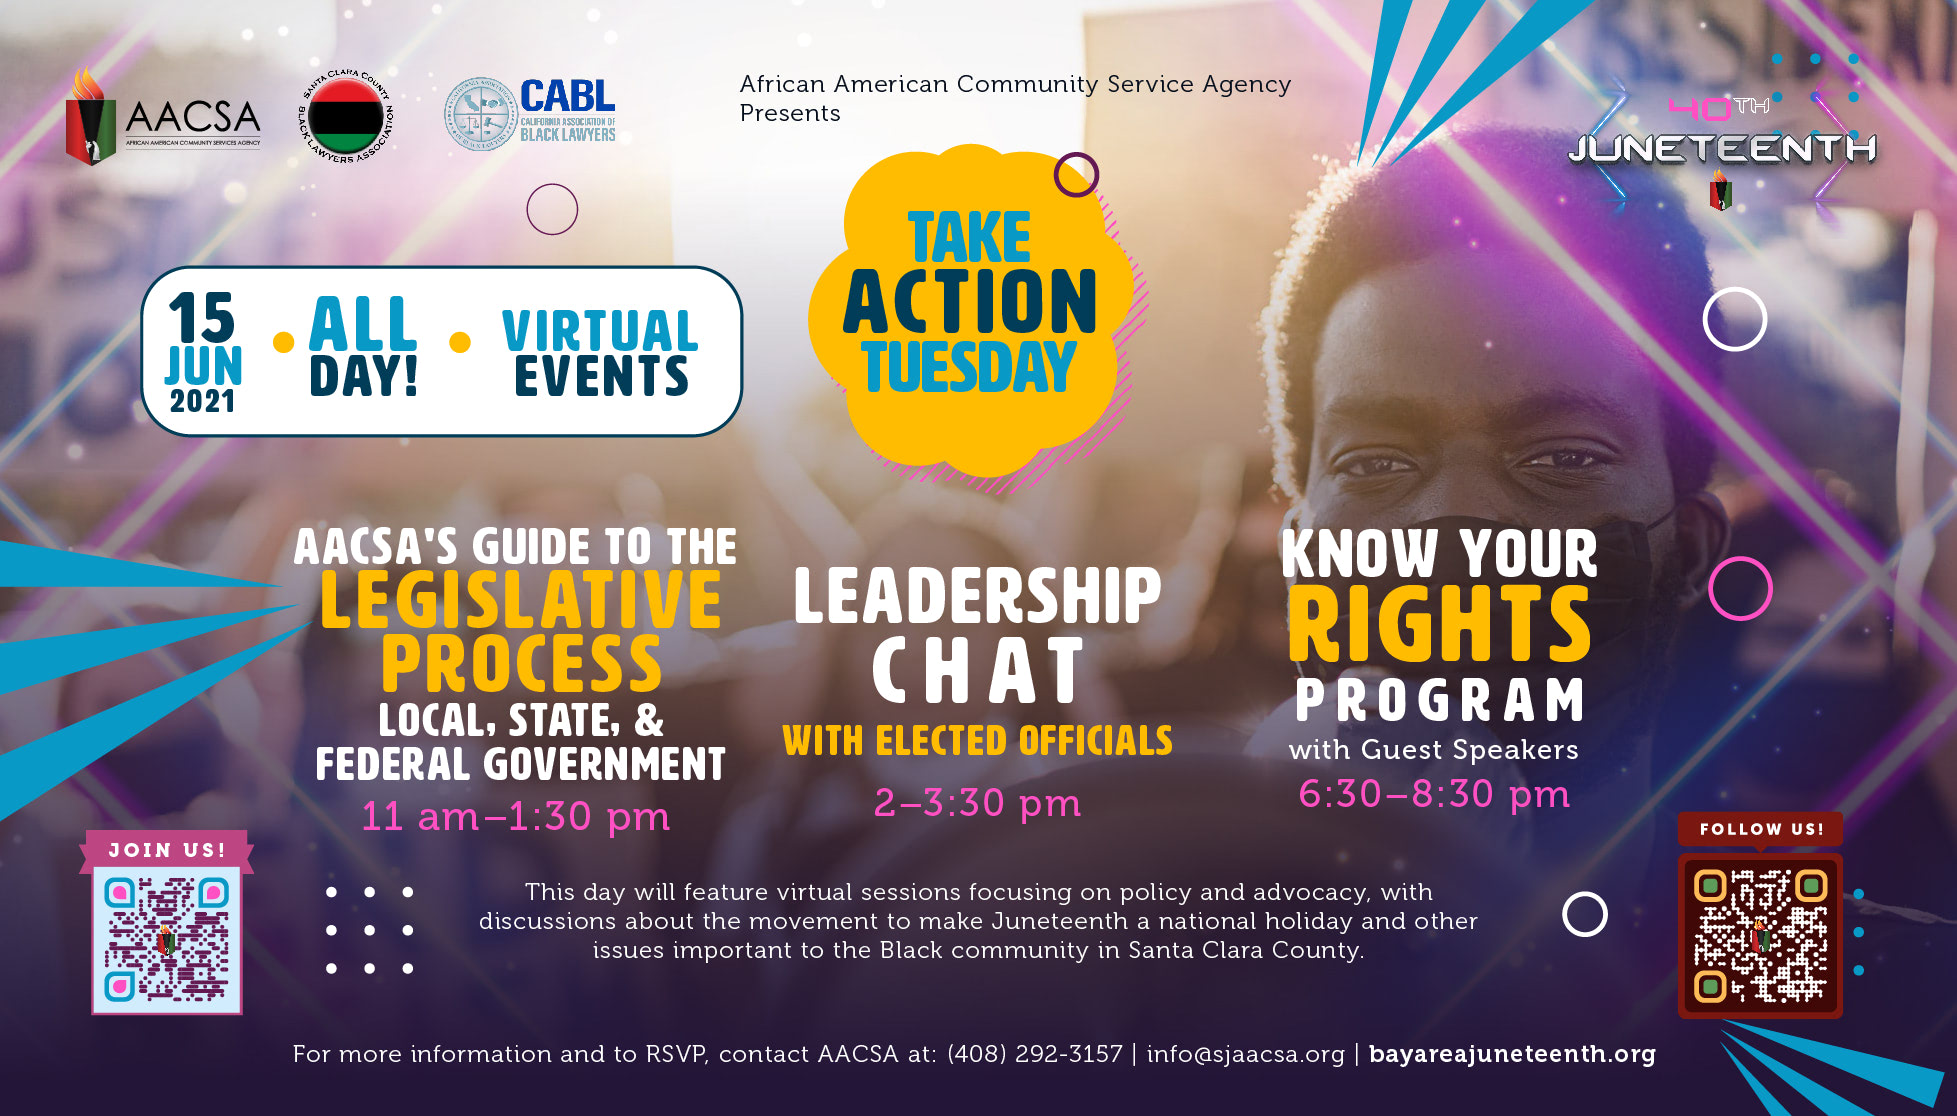 """Banner for the 40th Annual Juneteenth In The Park Celebration Week event: Take Action Tuesday. Starting with the """"AACSA's Guide to the Legislative Process"""" at 11:00am until 1:30pm. Followed by """"Leadership Chat with Elected Officials"""" from 2:00pm until 3:30pm. Finishing off with """"Know Your Rights Program"""" with special guest speakers from 6:30 until 8:30pm PST. Click the banner to see event details & sign-up!"""